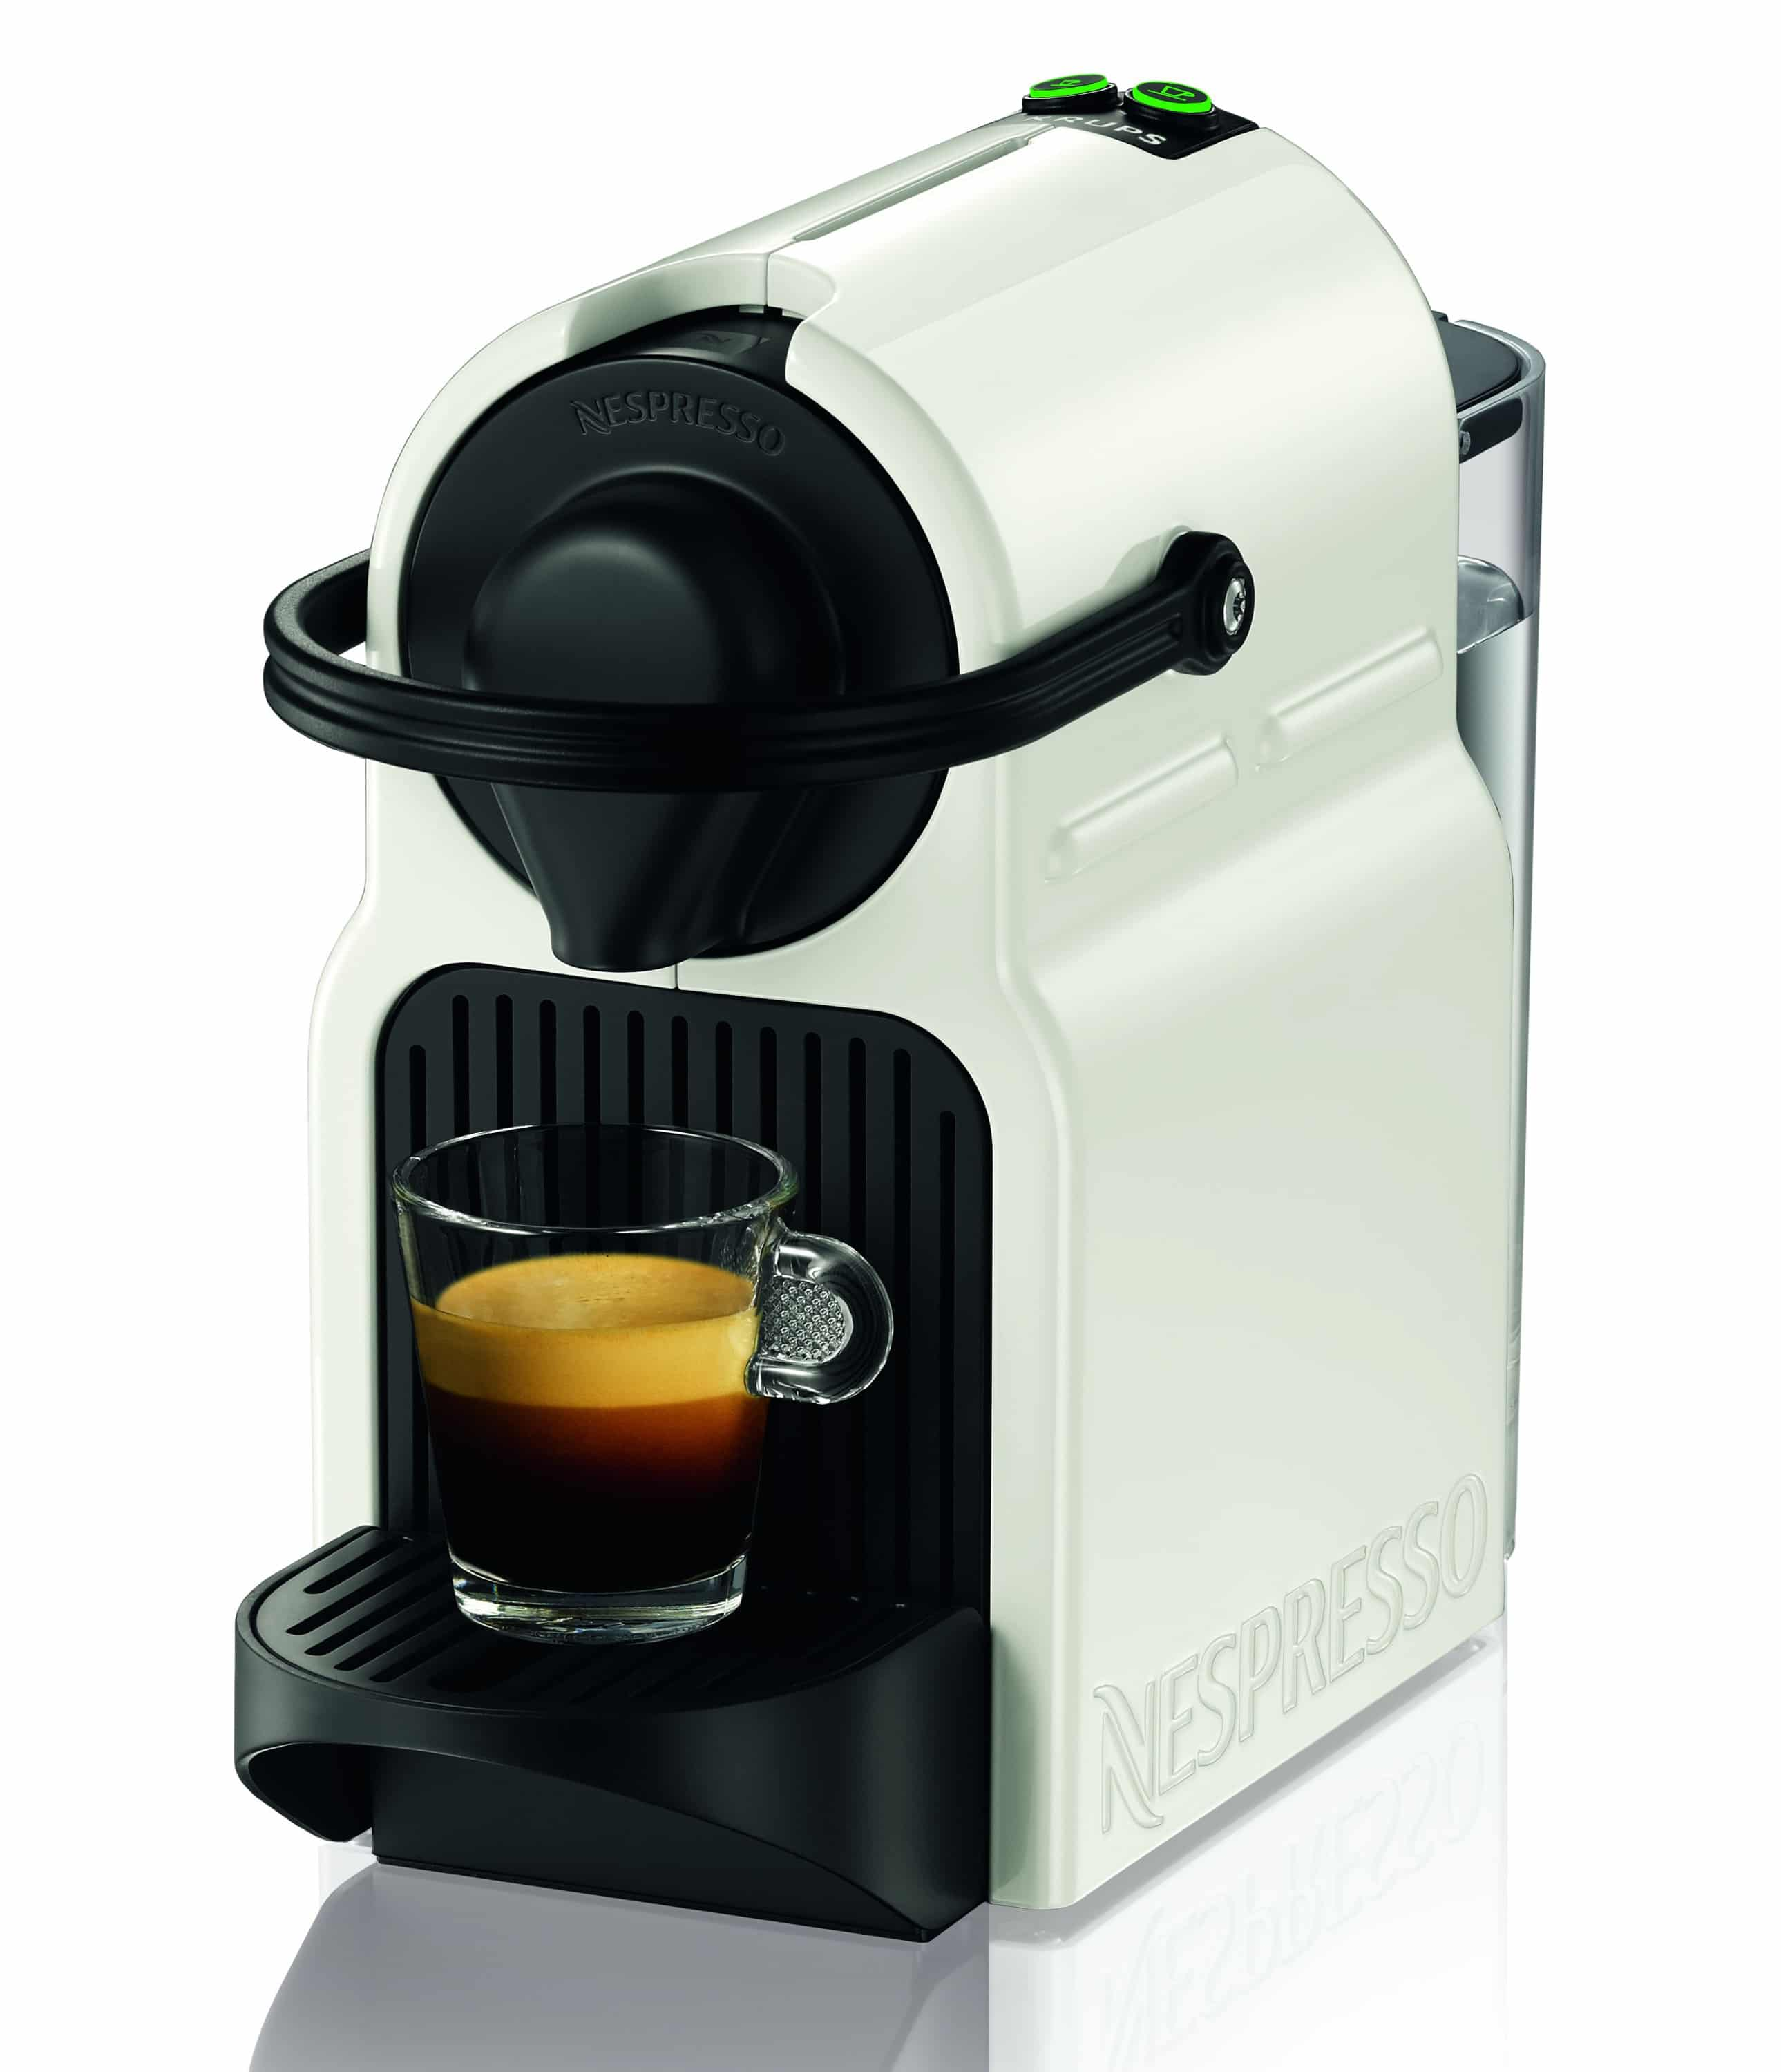 cafetiere nespresso system